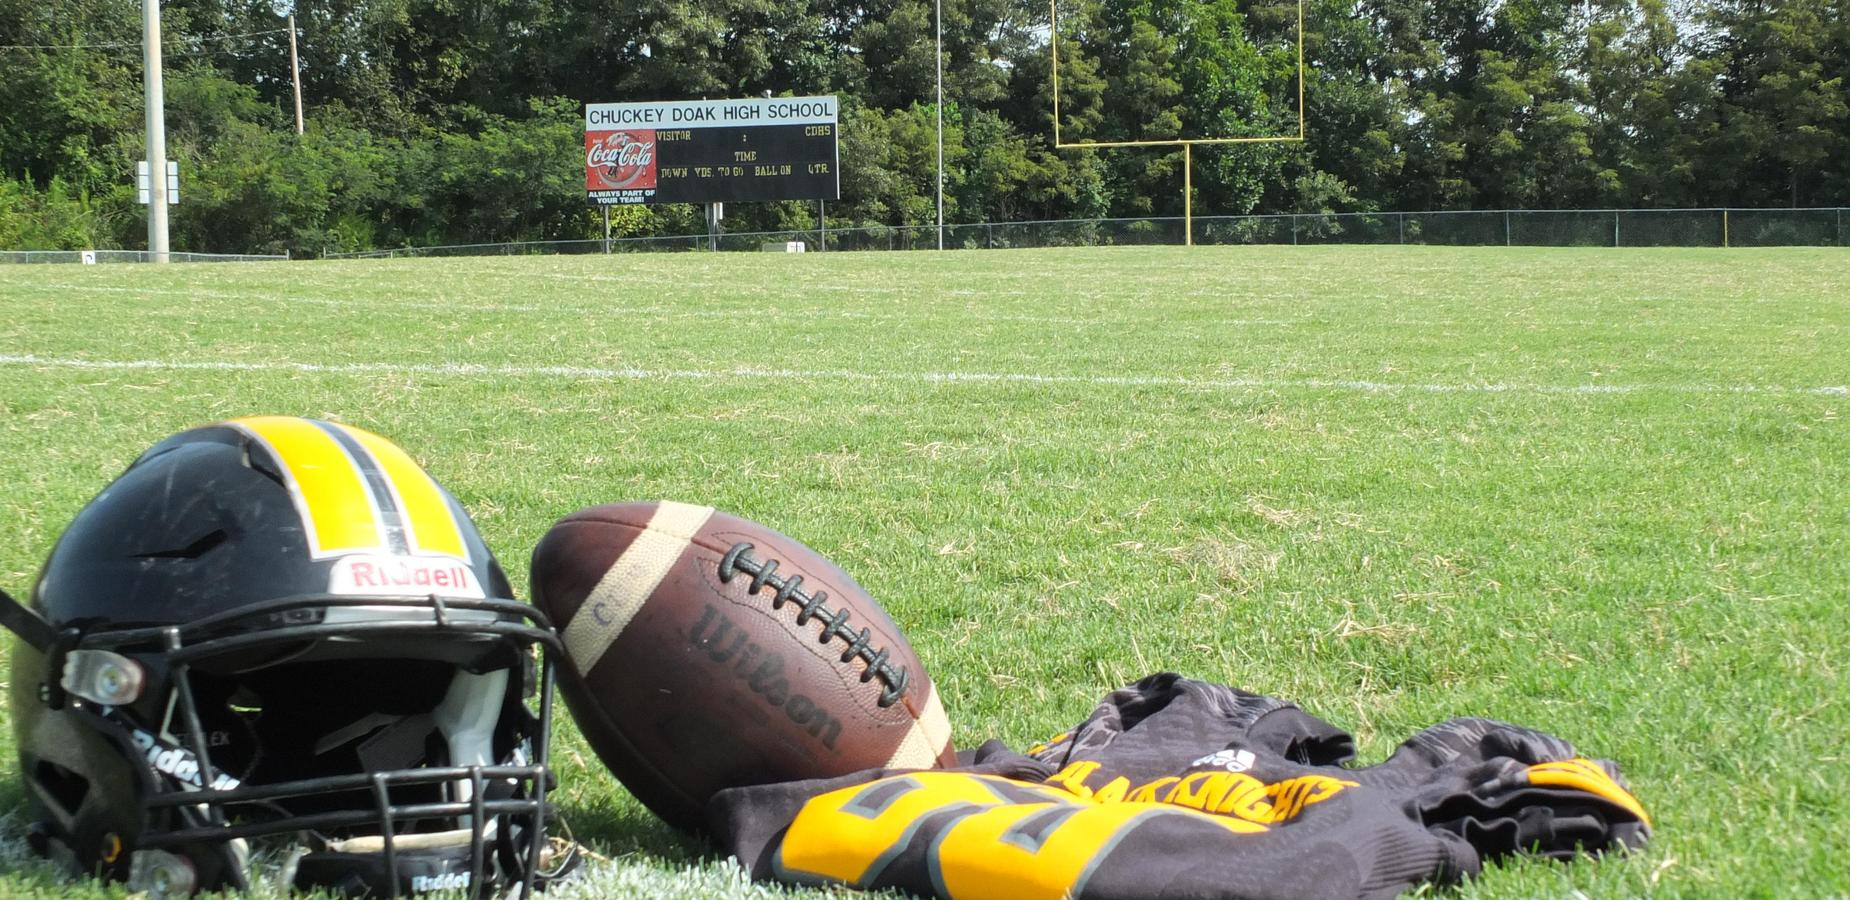 Chuckey Doak football helmet, jersey, and football on the football field